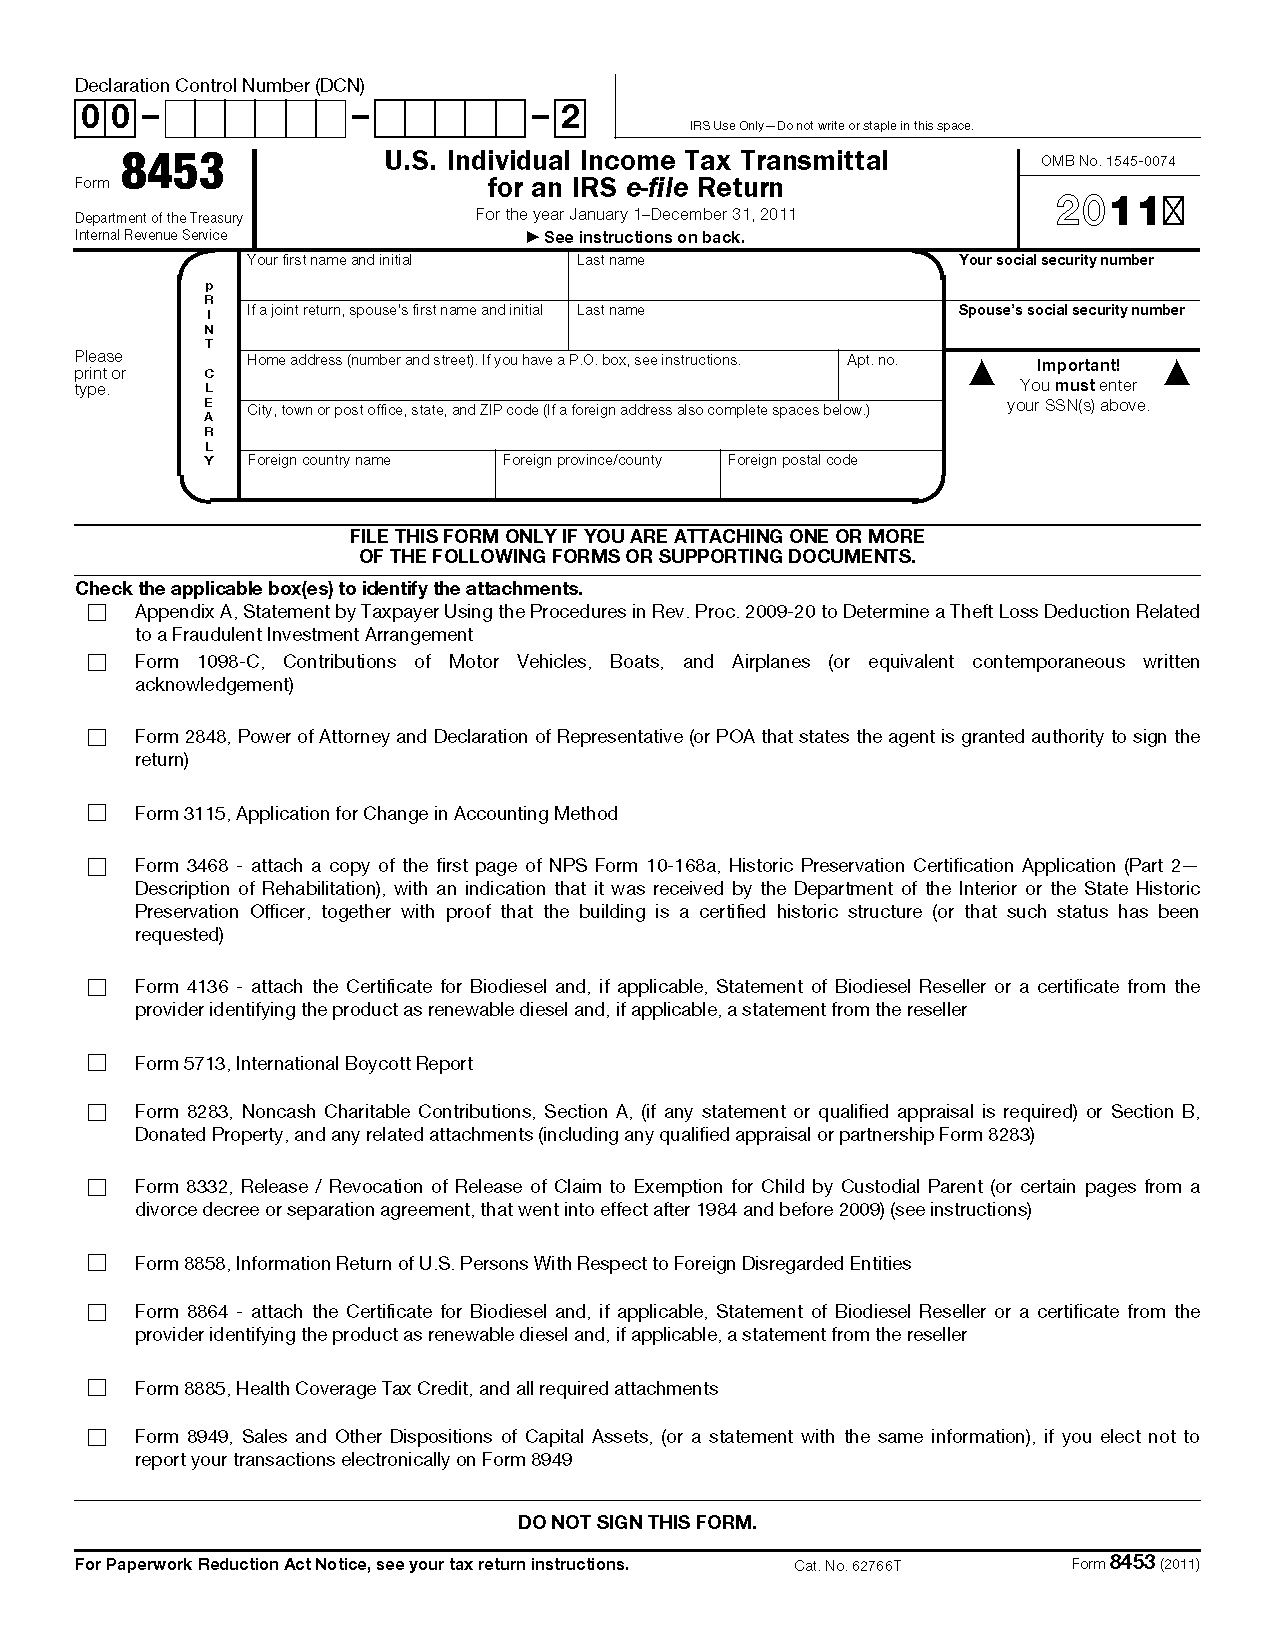 Form 8453 us individual income tax transmittal for an irs e file form 8453 us individual income tax transmittal for an irs e file return falaconquin